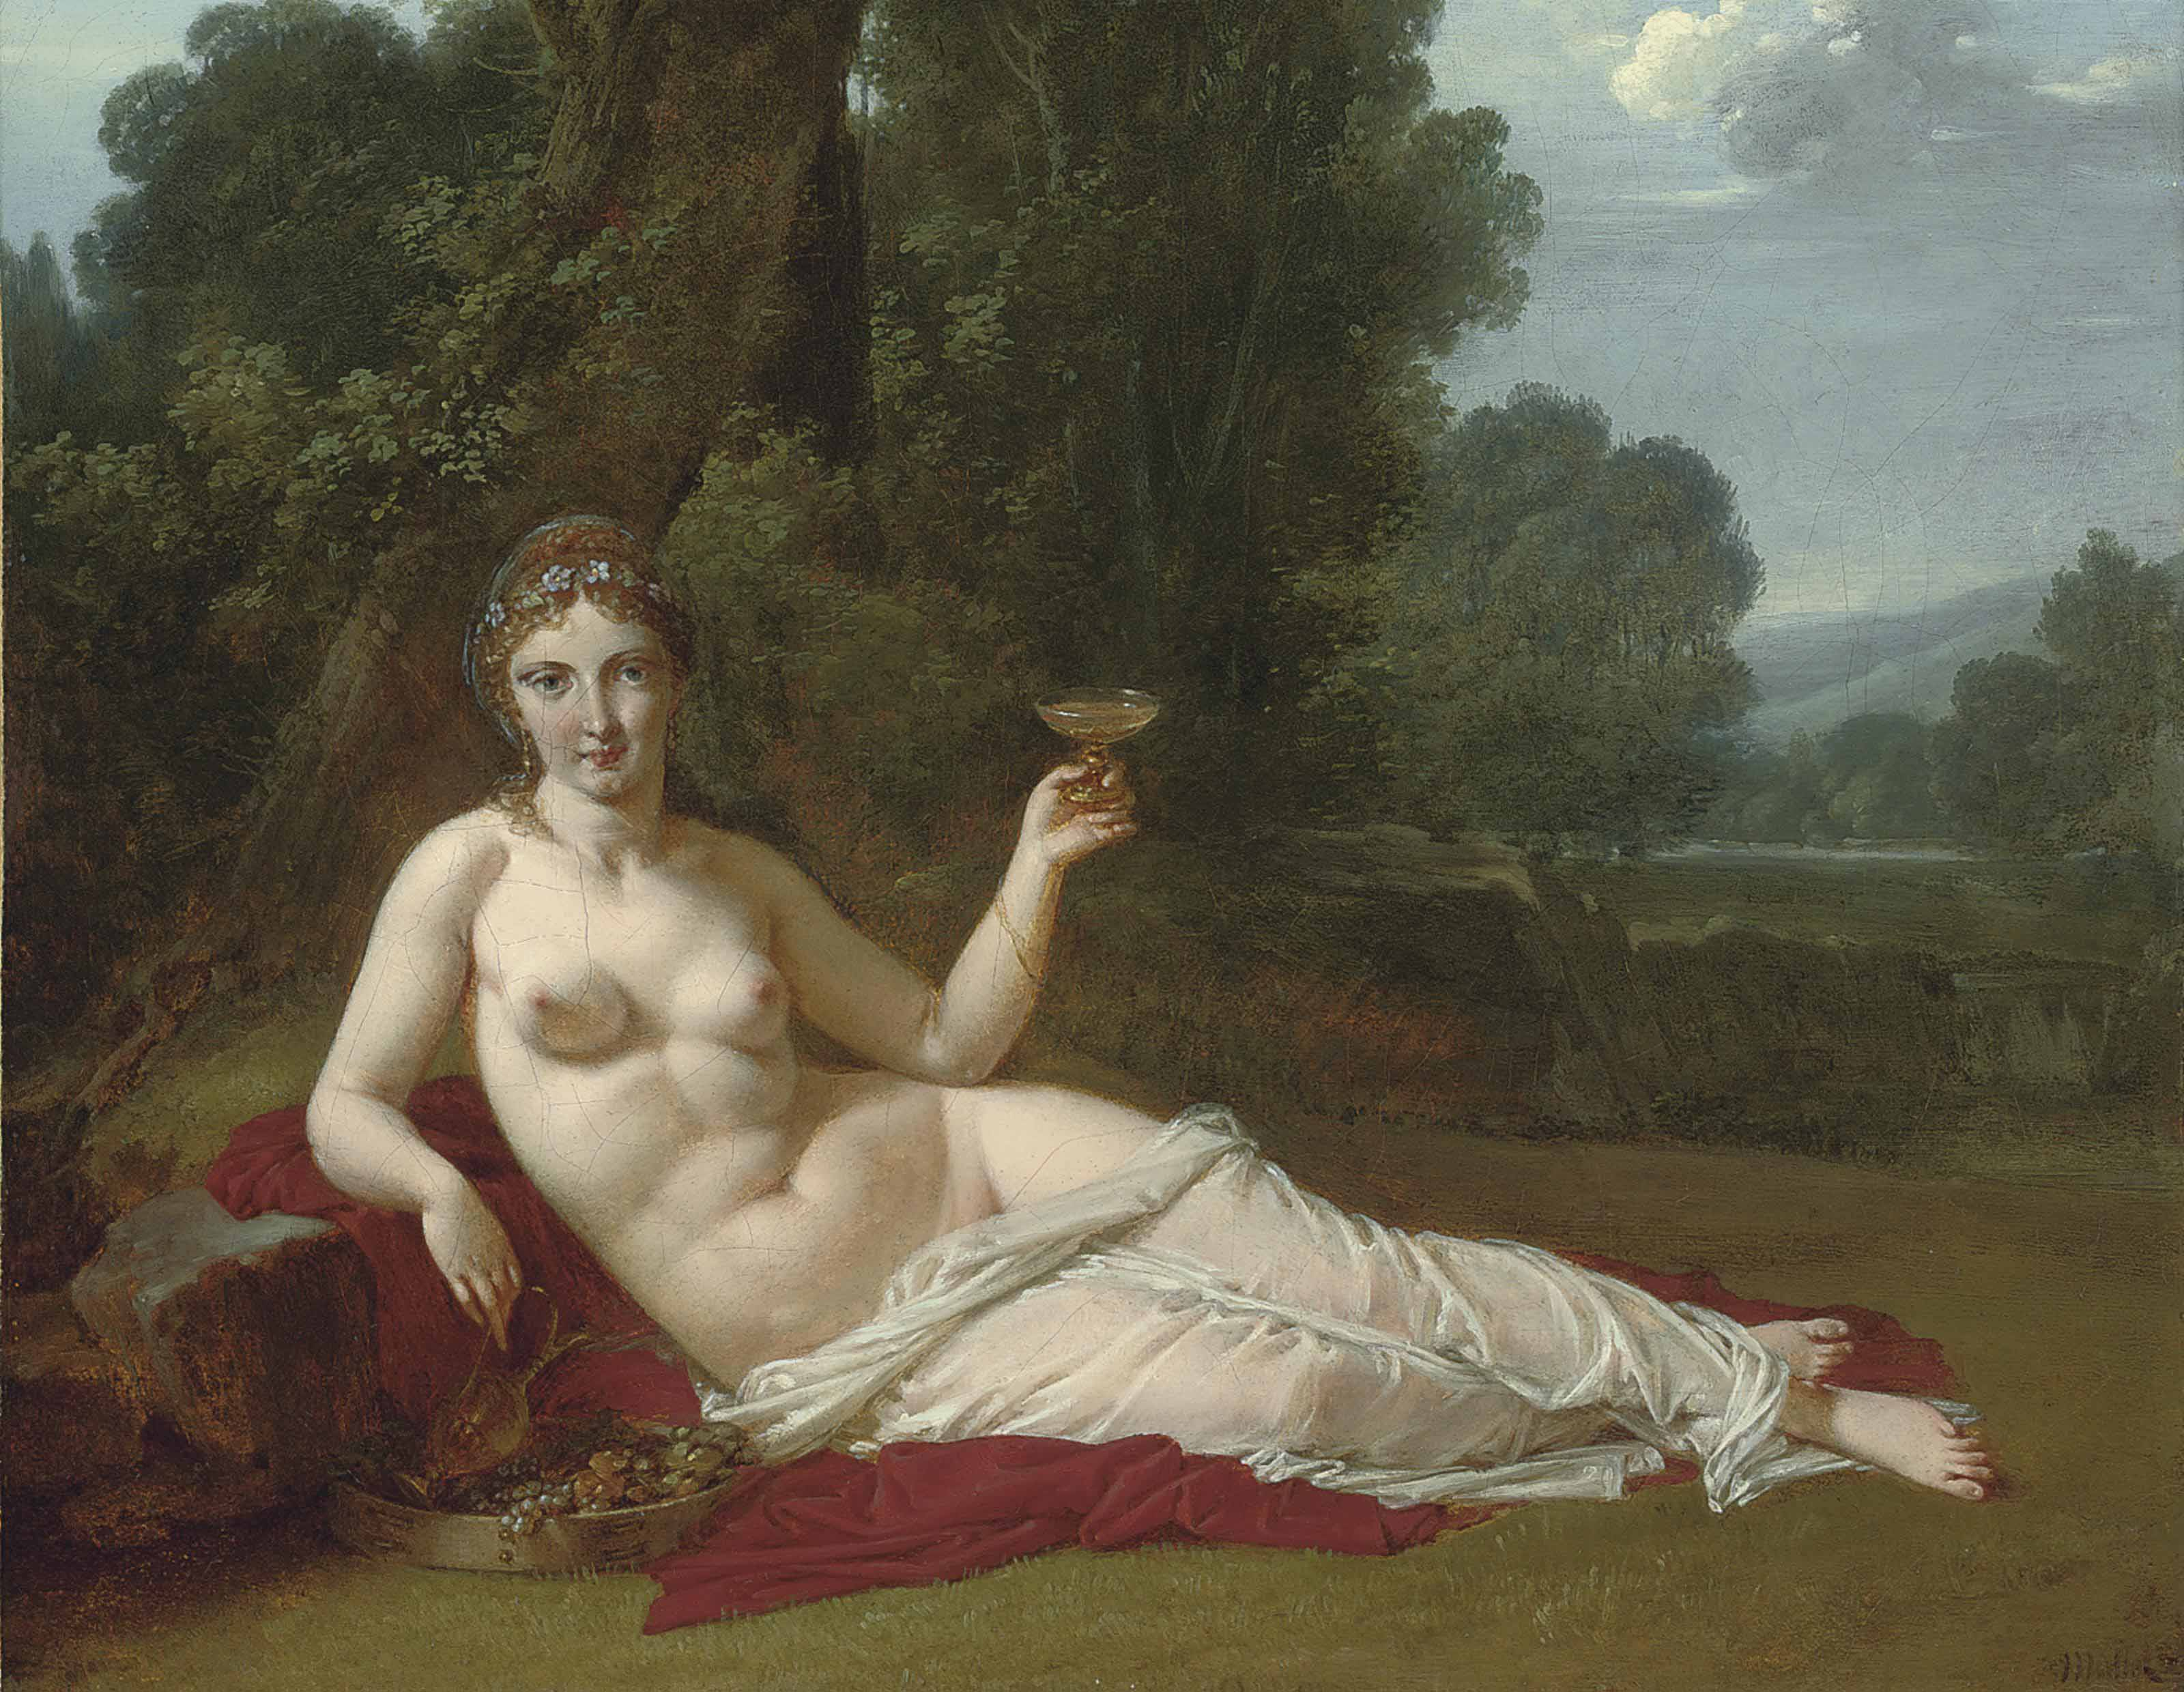 A reclining nude in a wooded landscape